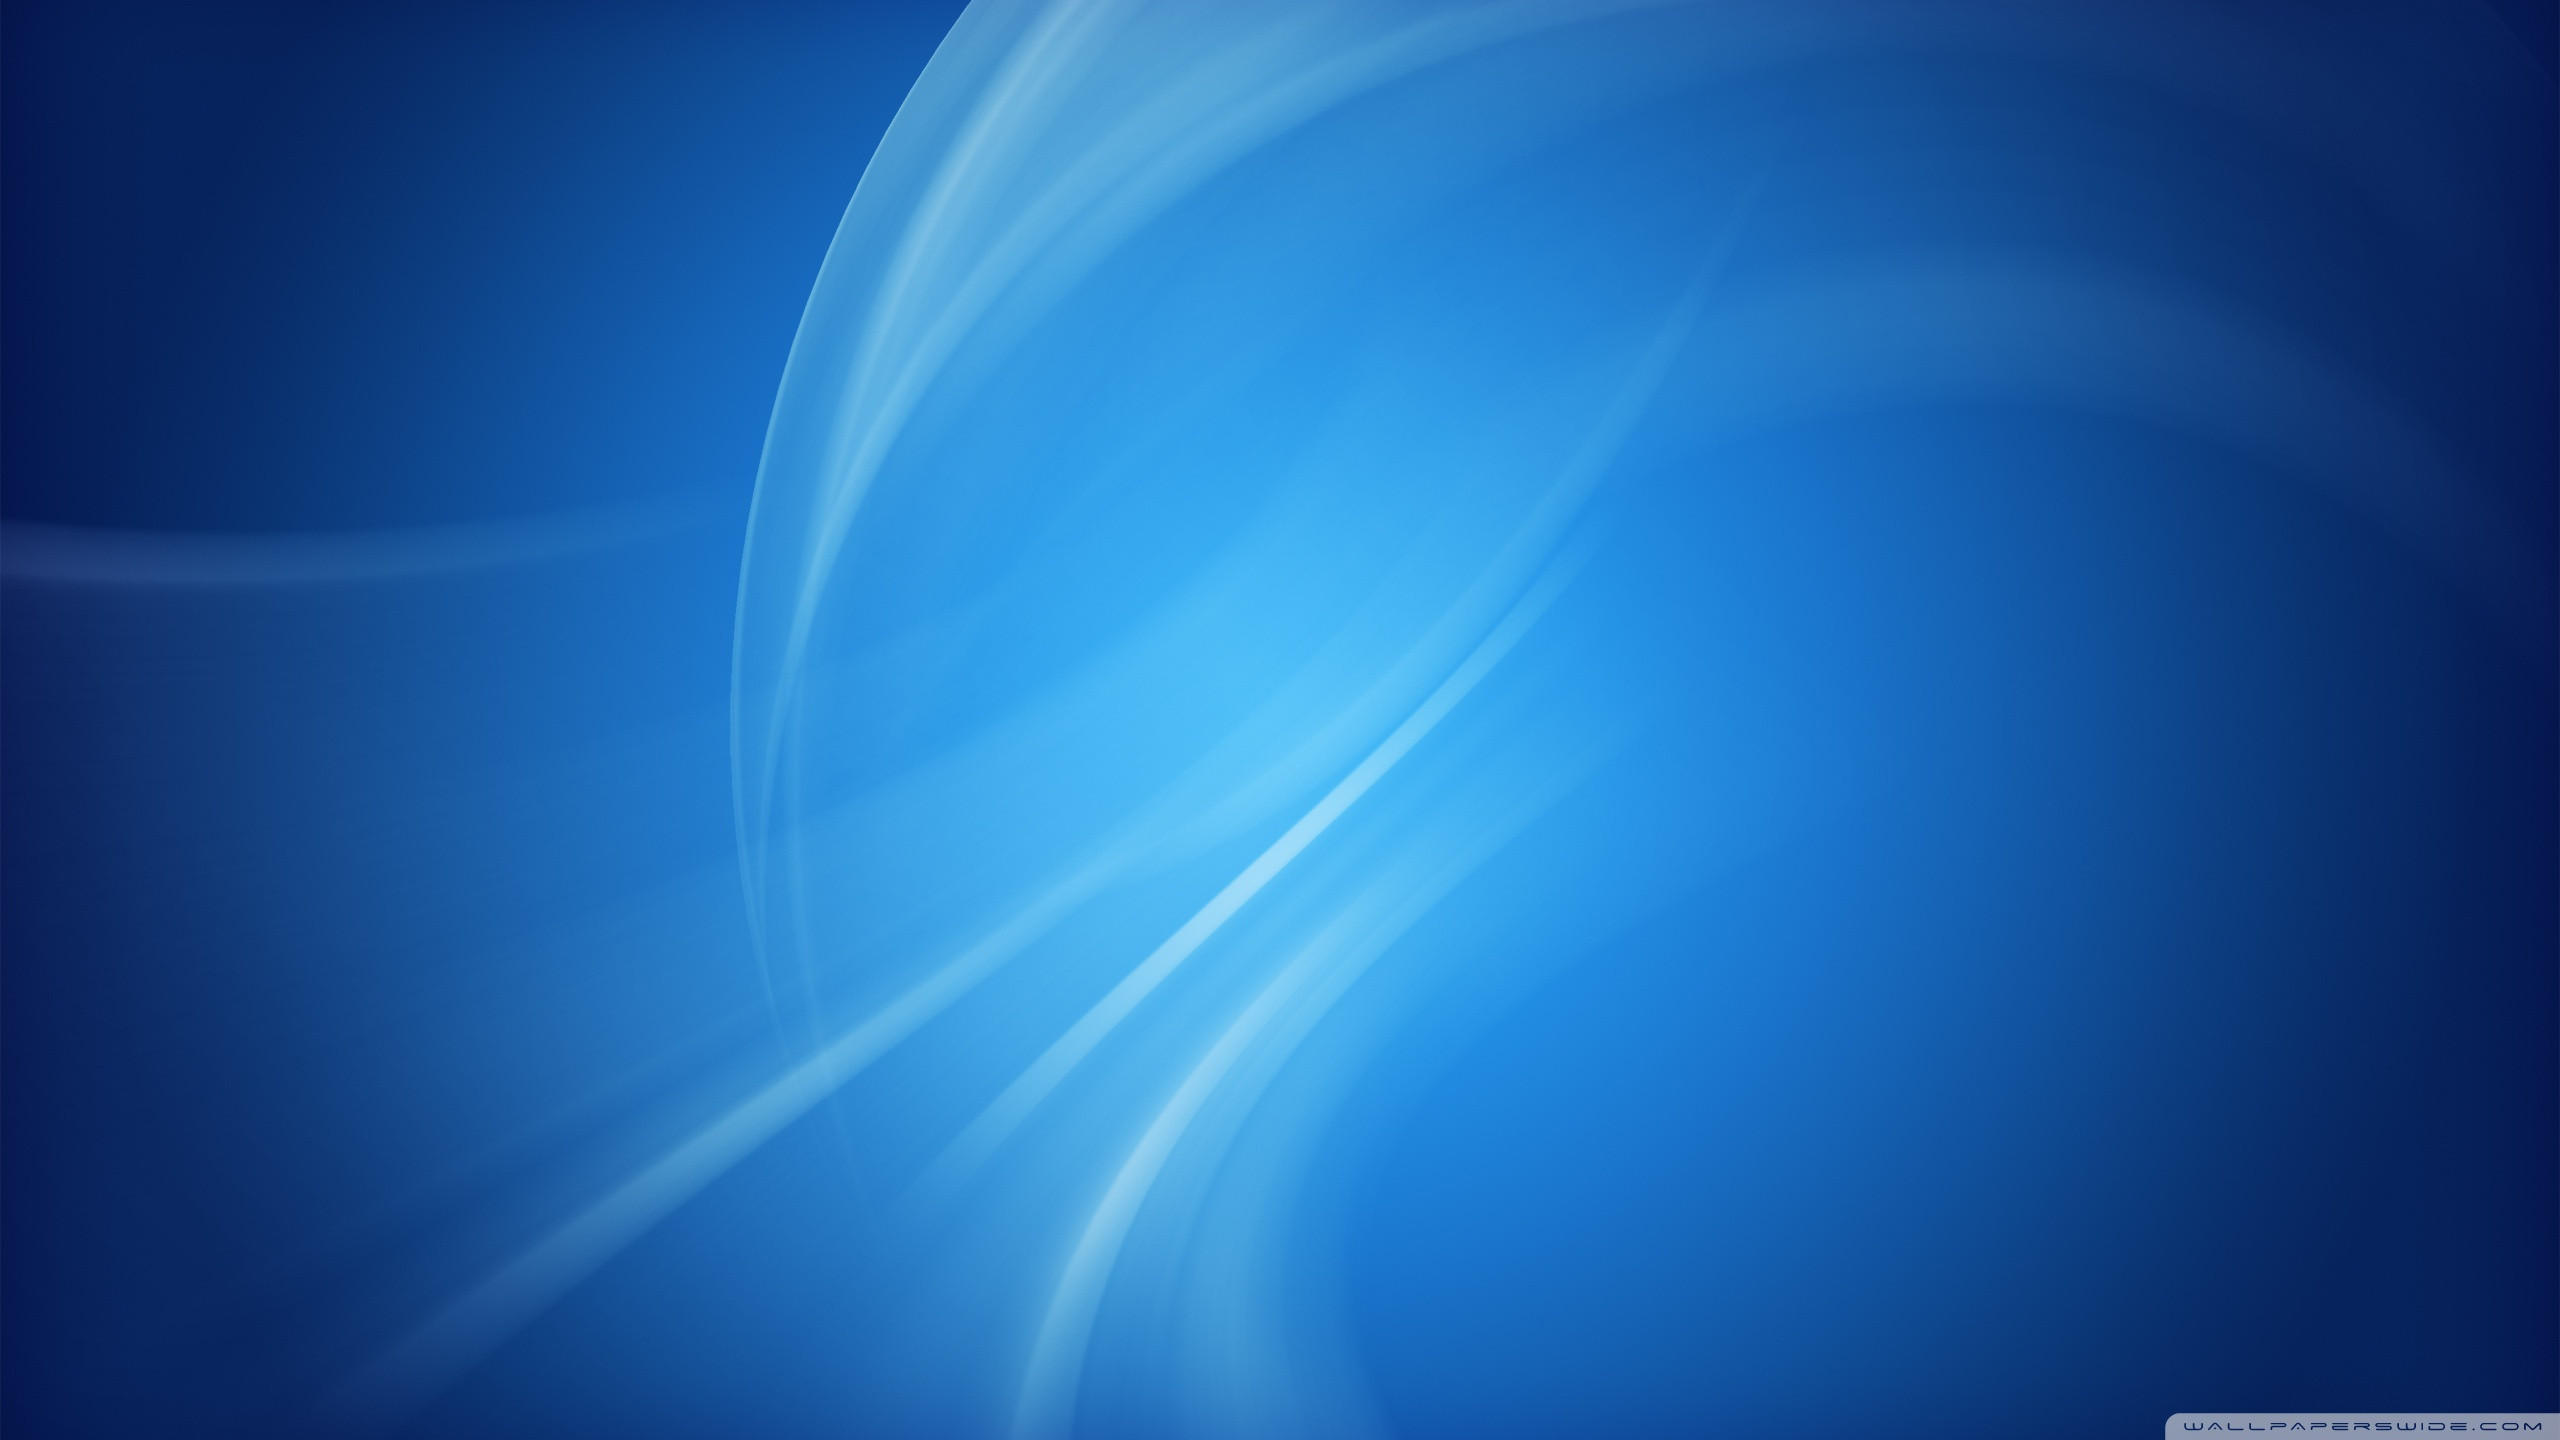 Blue Background Design HD desktop wallpaper : High Definition